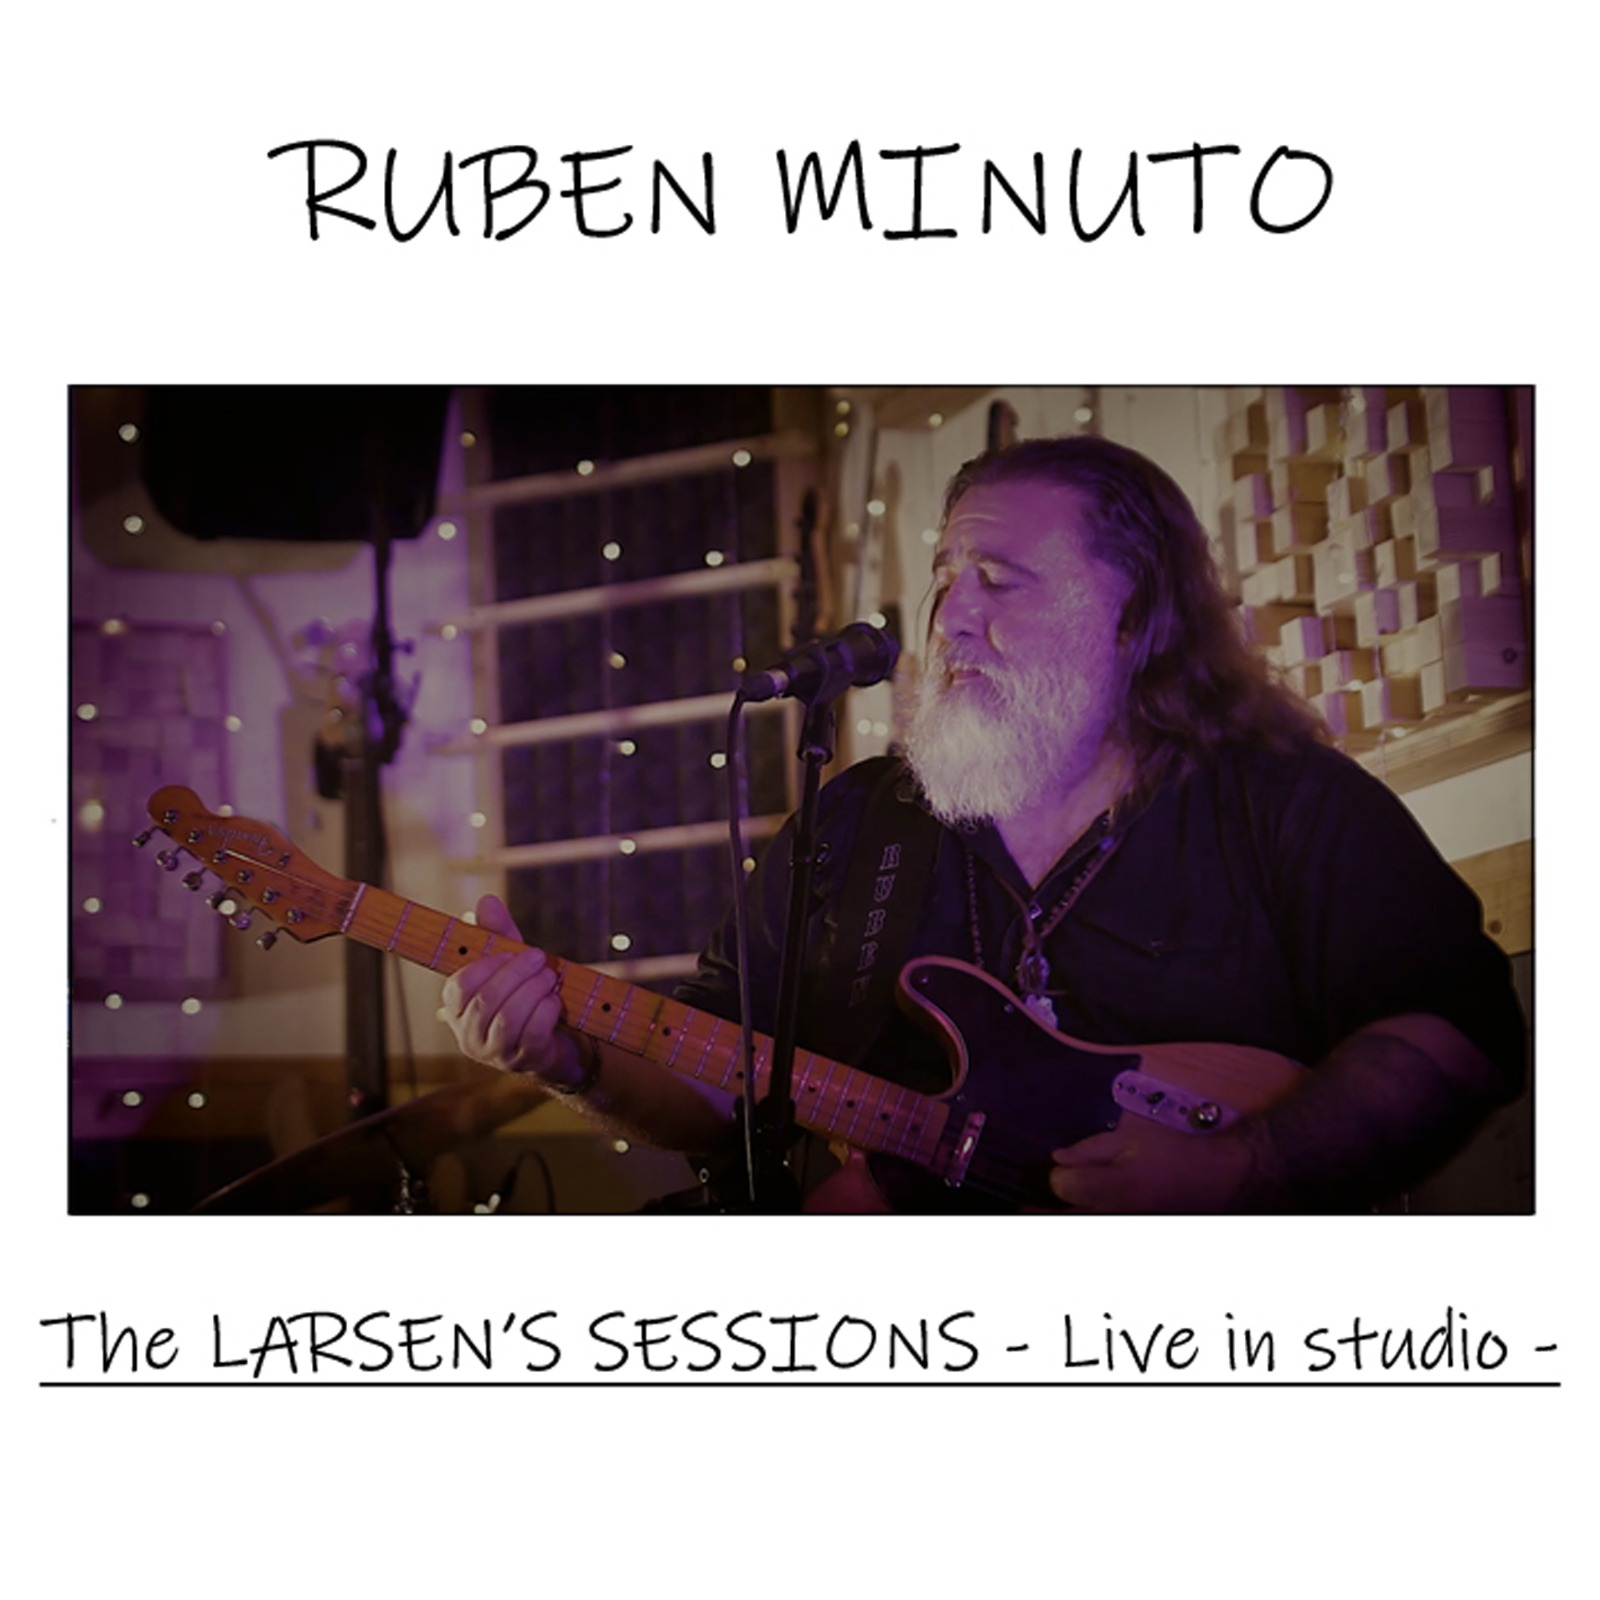 The Larsen's Sessions